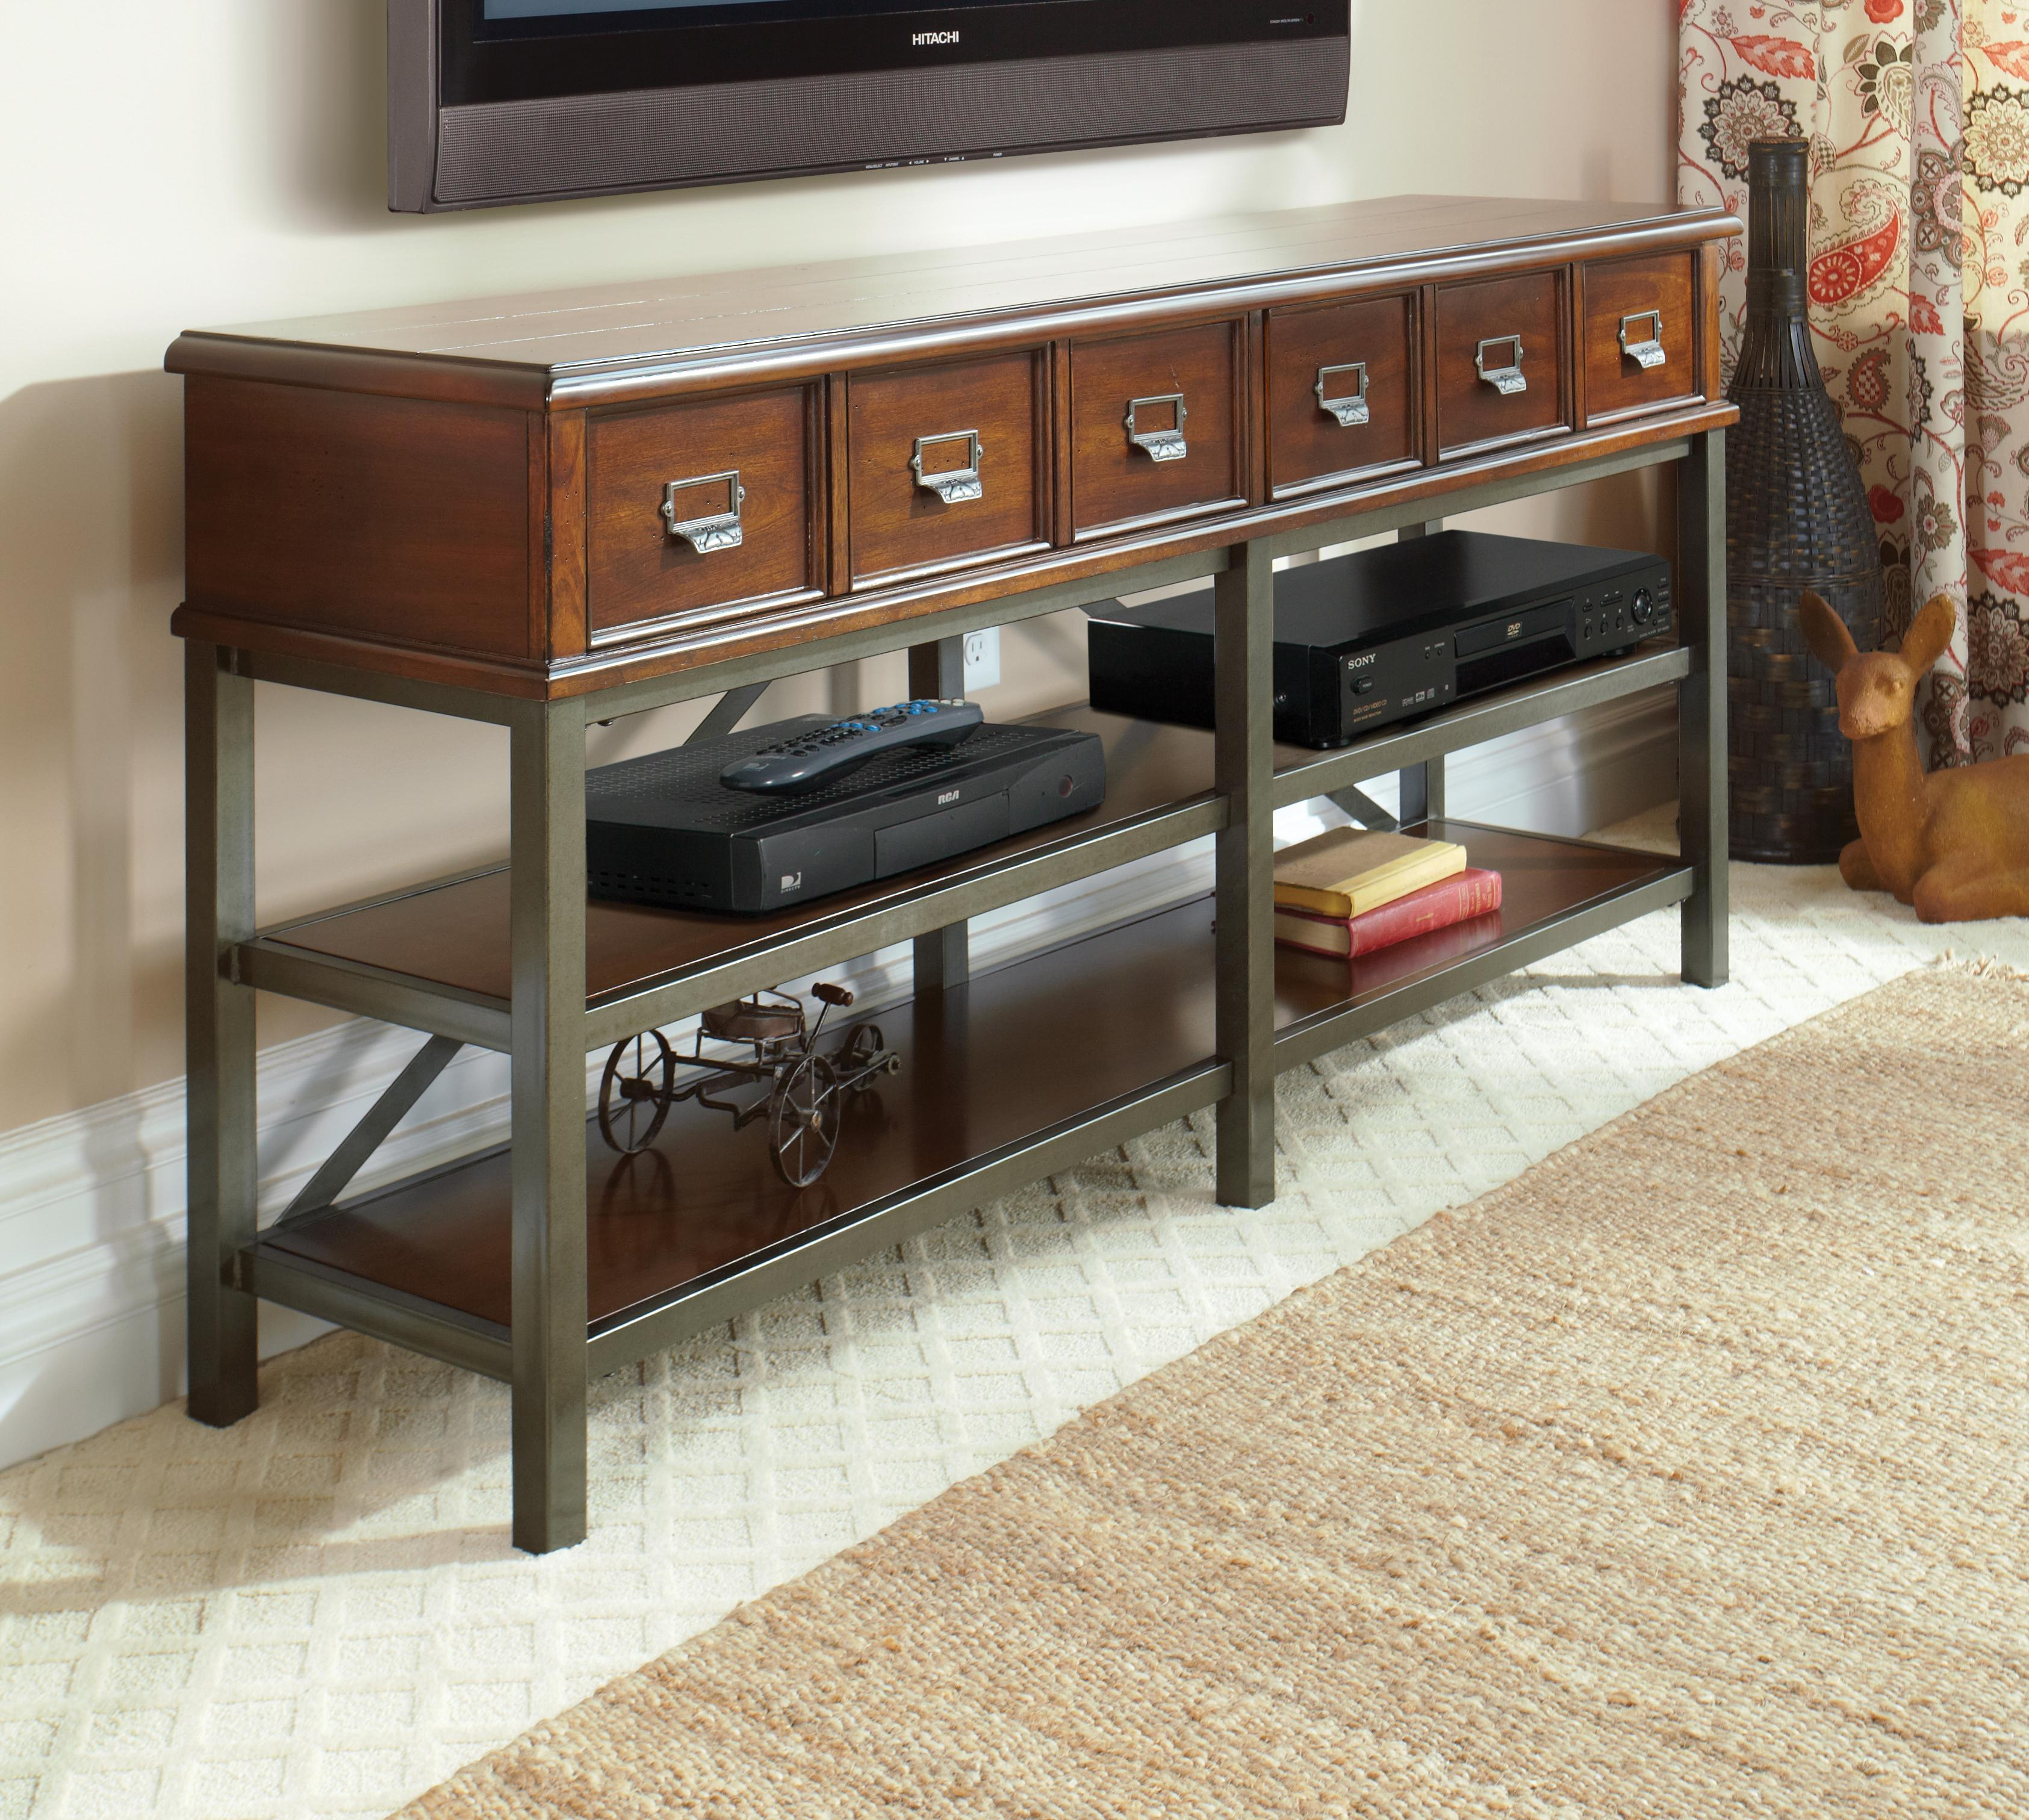 Easton Collection Blue Ridge Harmony-Cherry Entertainment Console - Item Number: 426-068 CONS